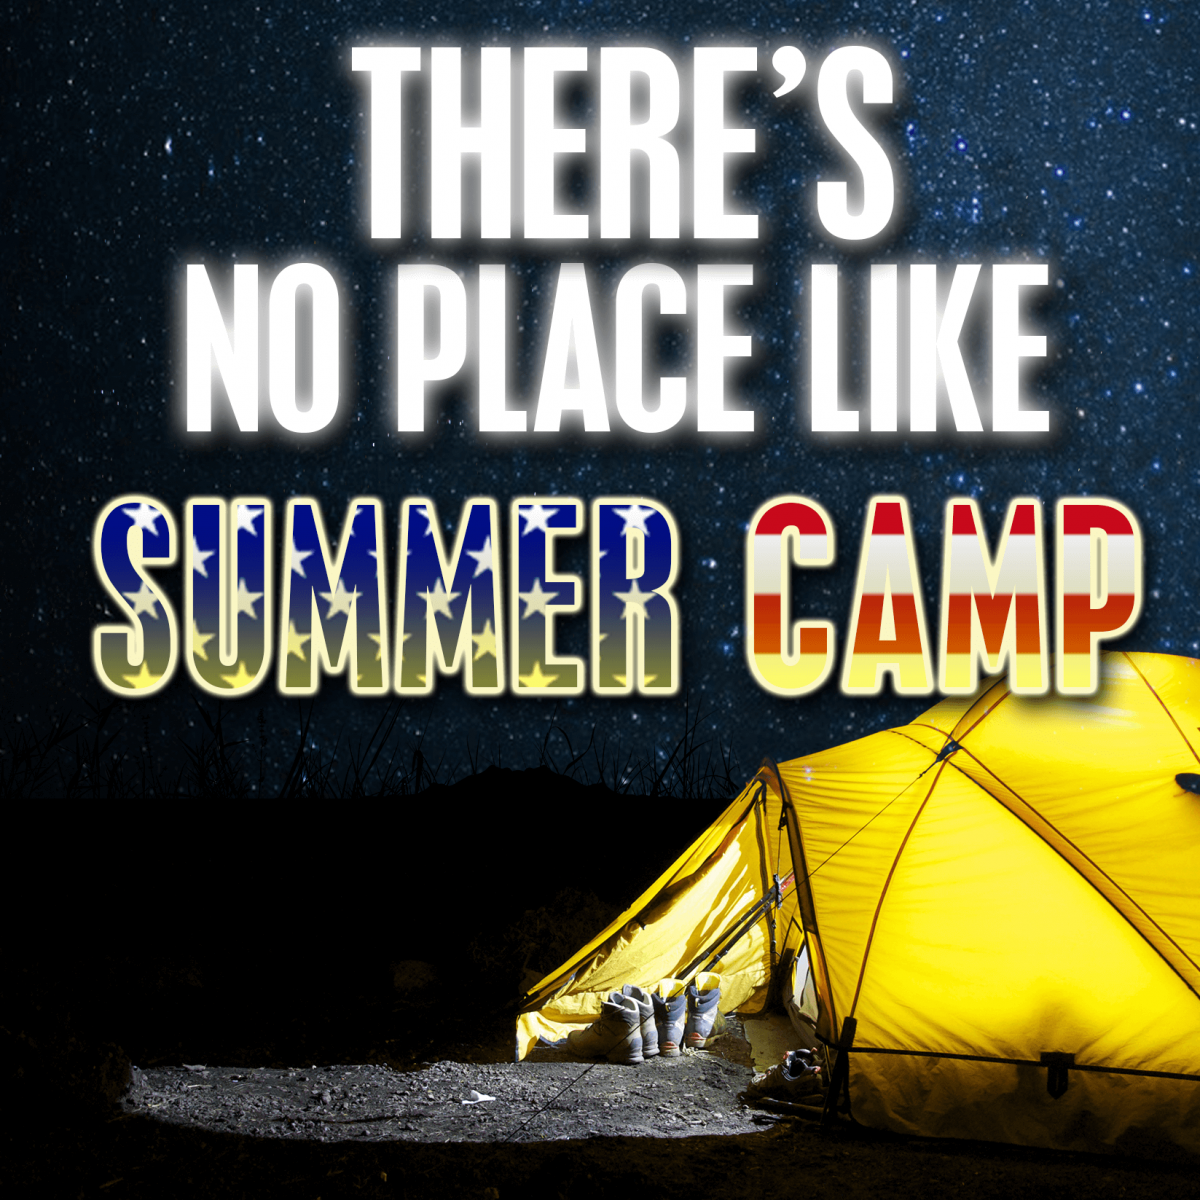 theres no place like summer camp podcast logo